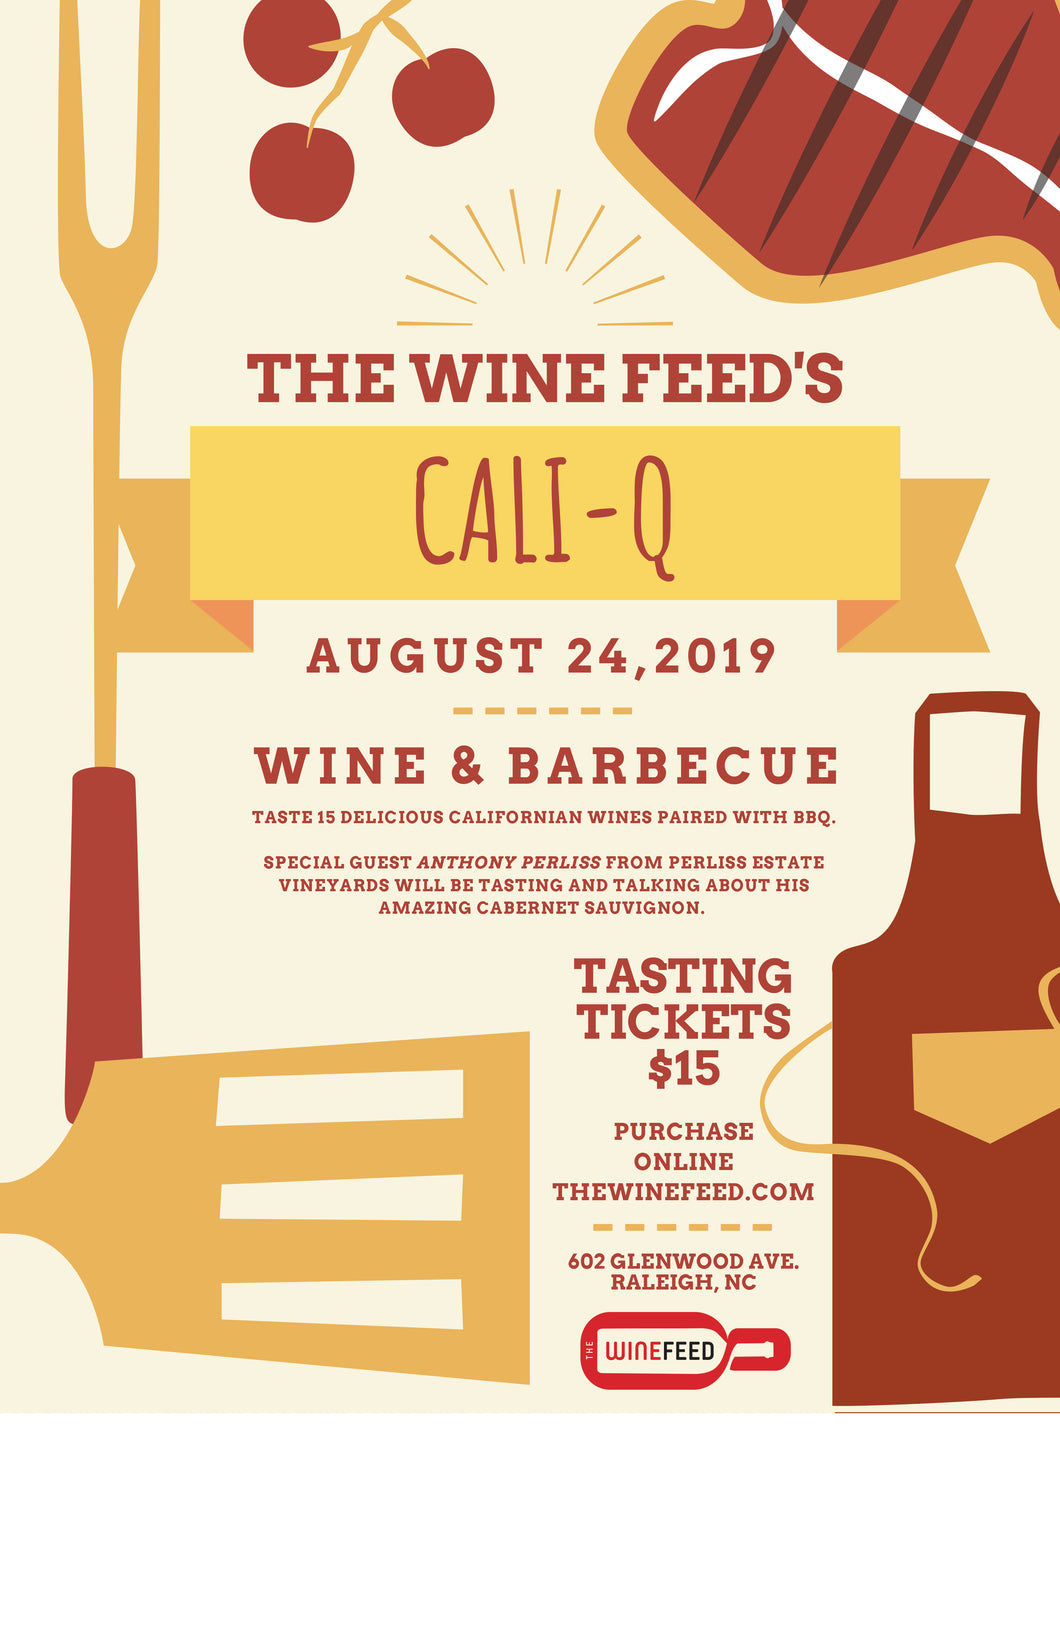 Cali-Q - Wine & Barbecue event